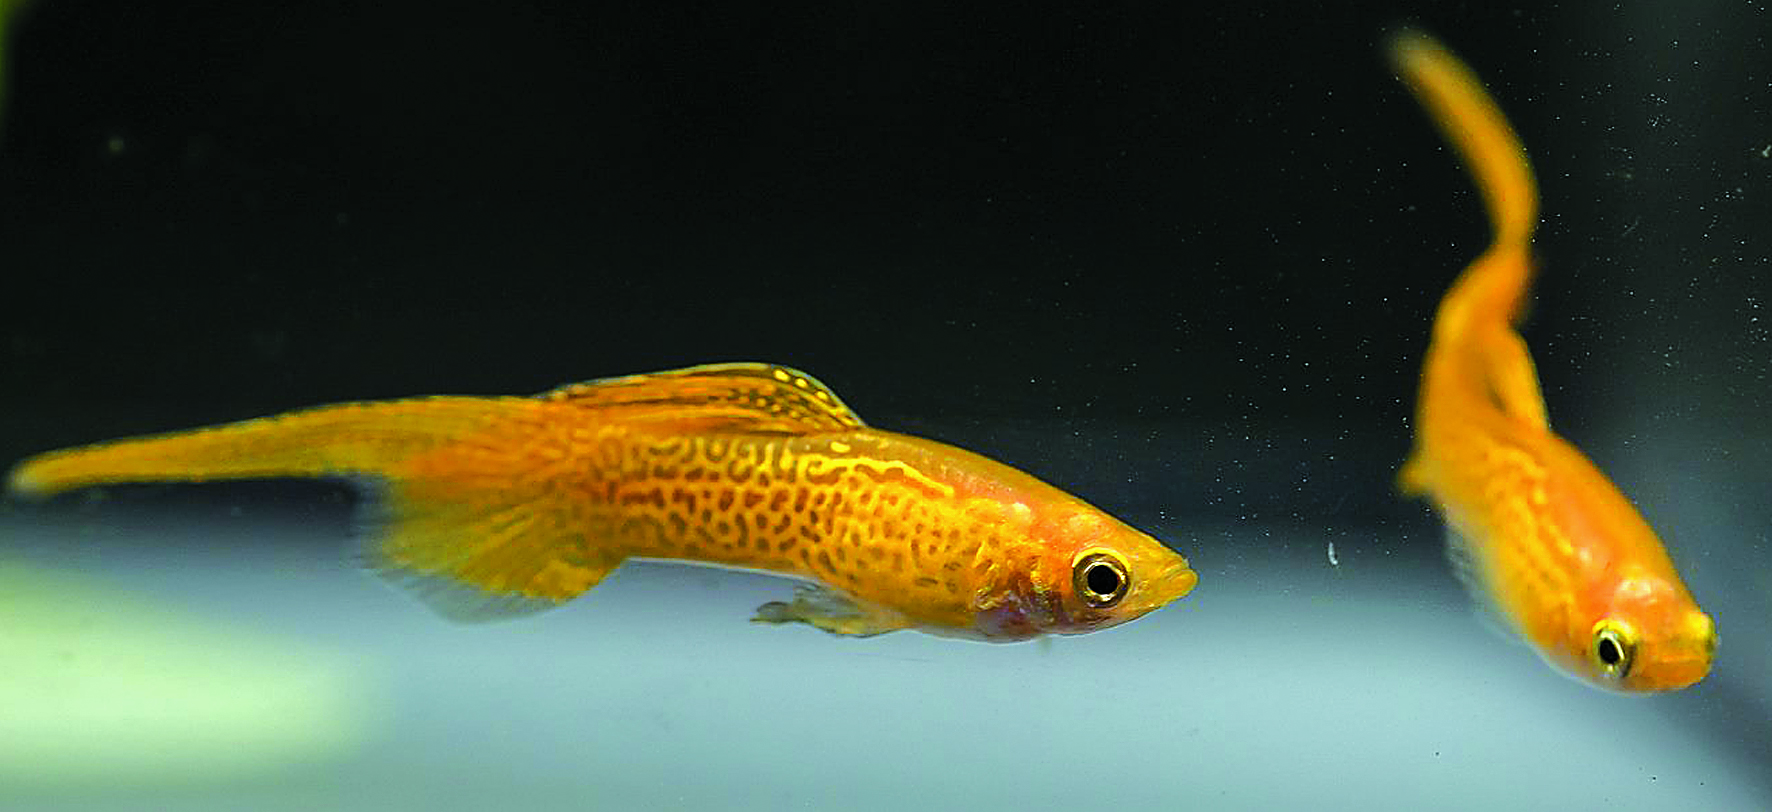 15. Internationales Wiener Guppy - Hochzucht Championat